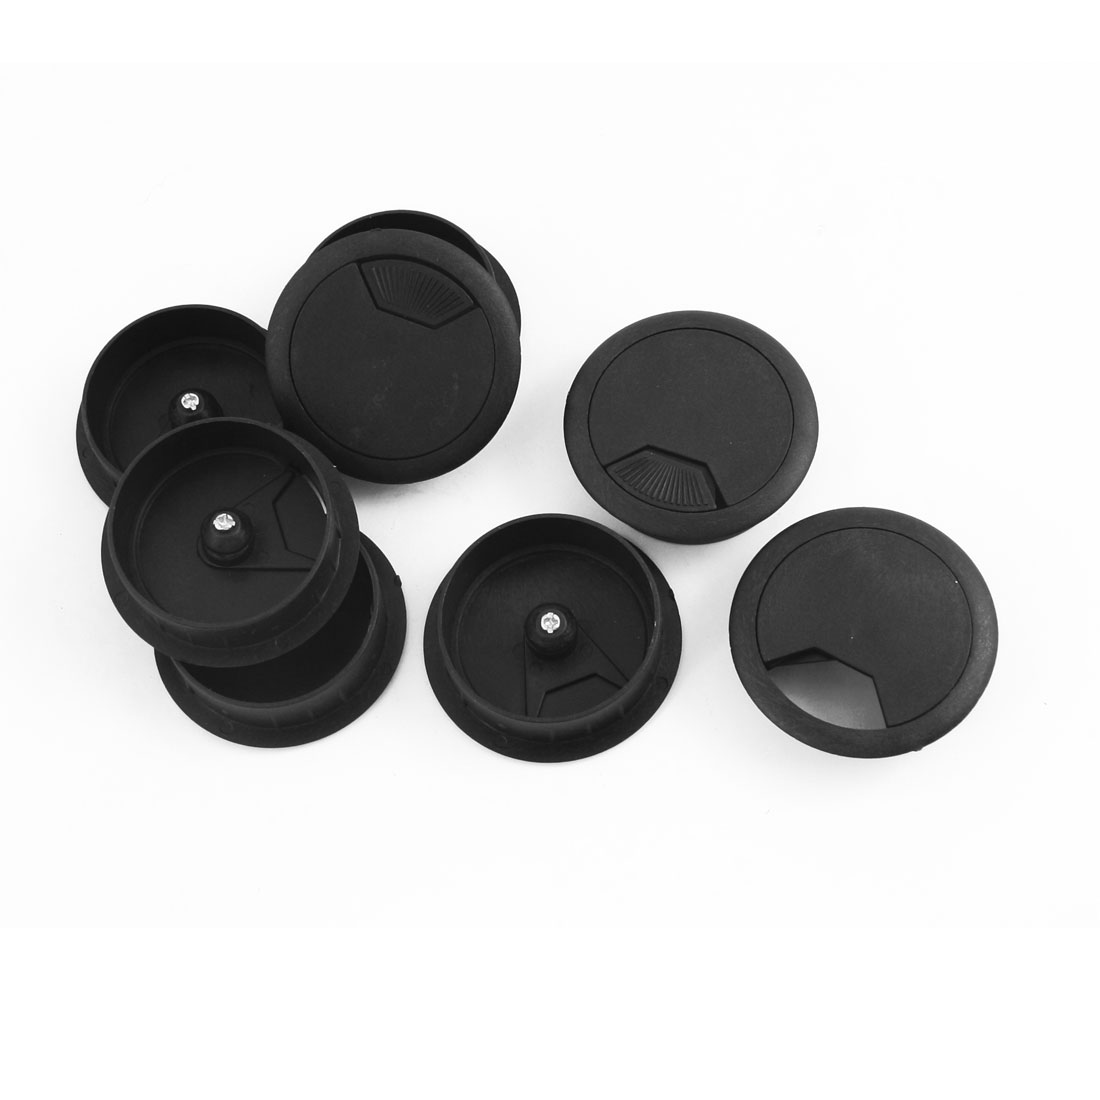 8 Pcs 60mm Mounting Hole Diameter Computer Desk Table Counter Top Cable Cord Plastic Grommets